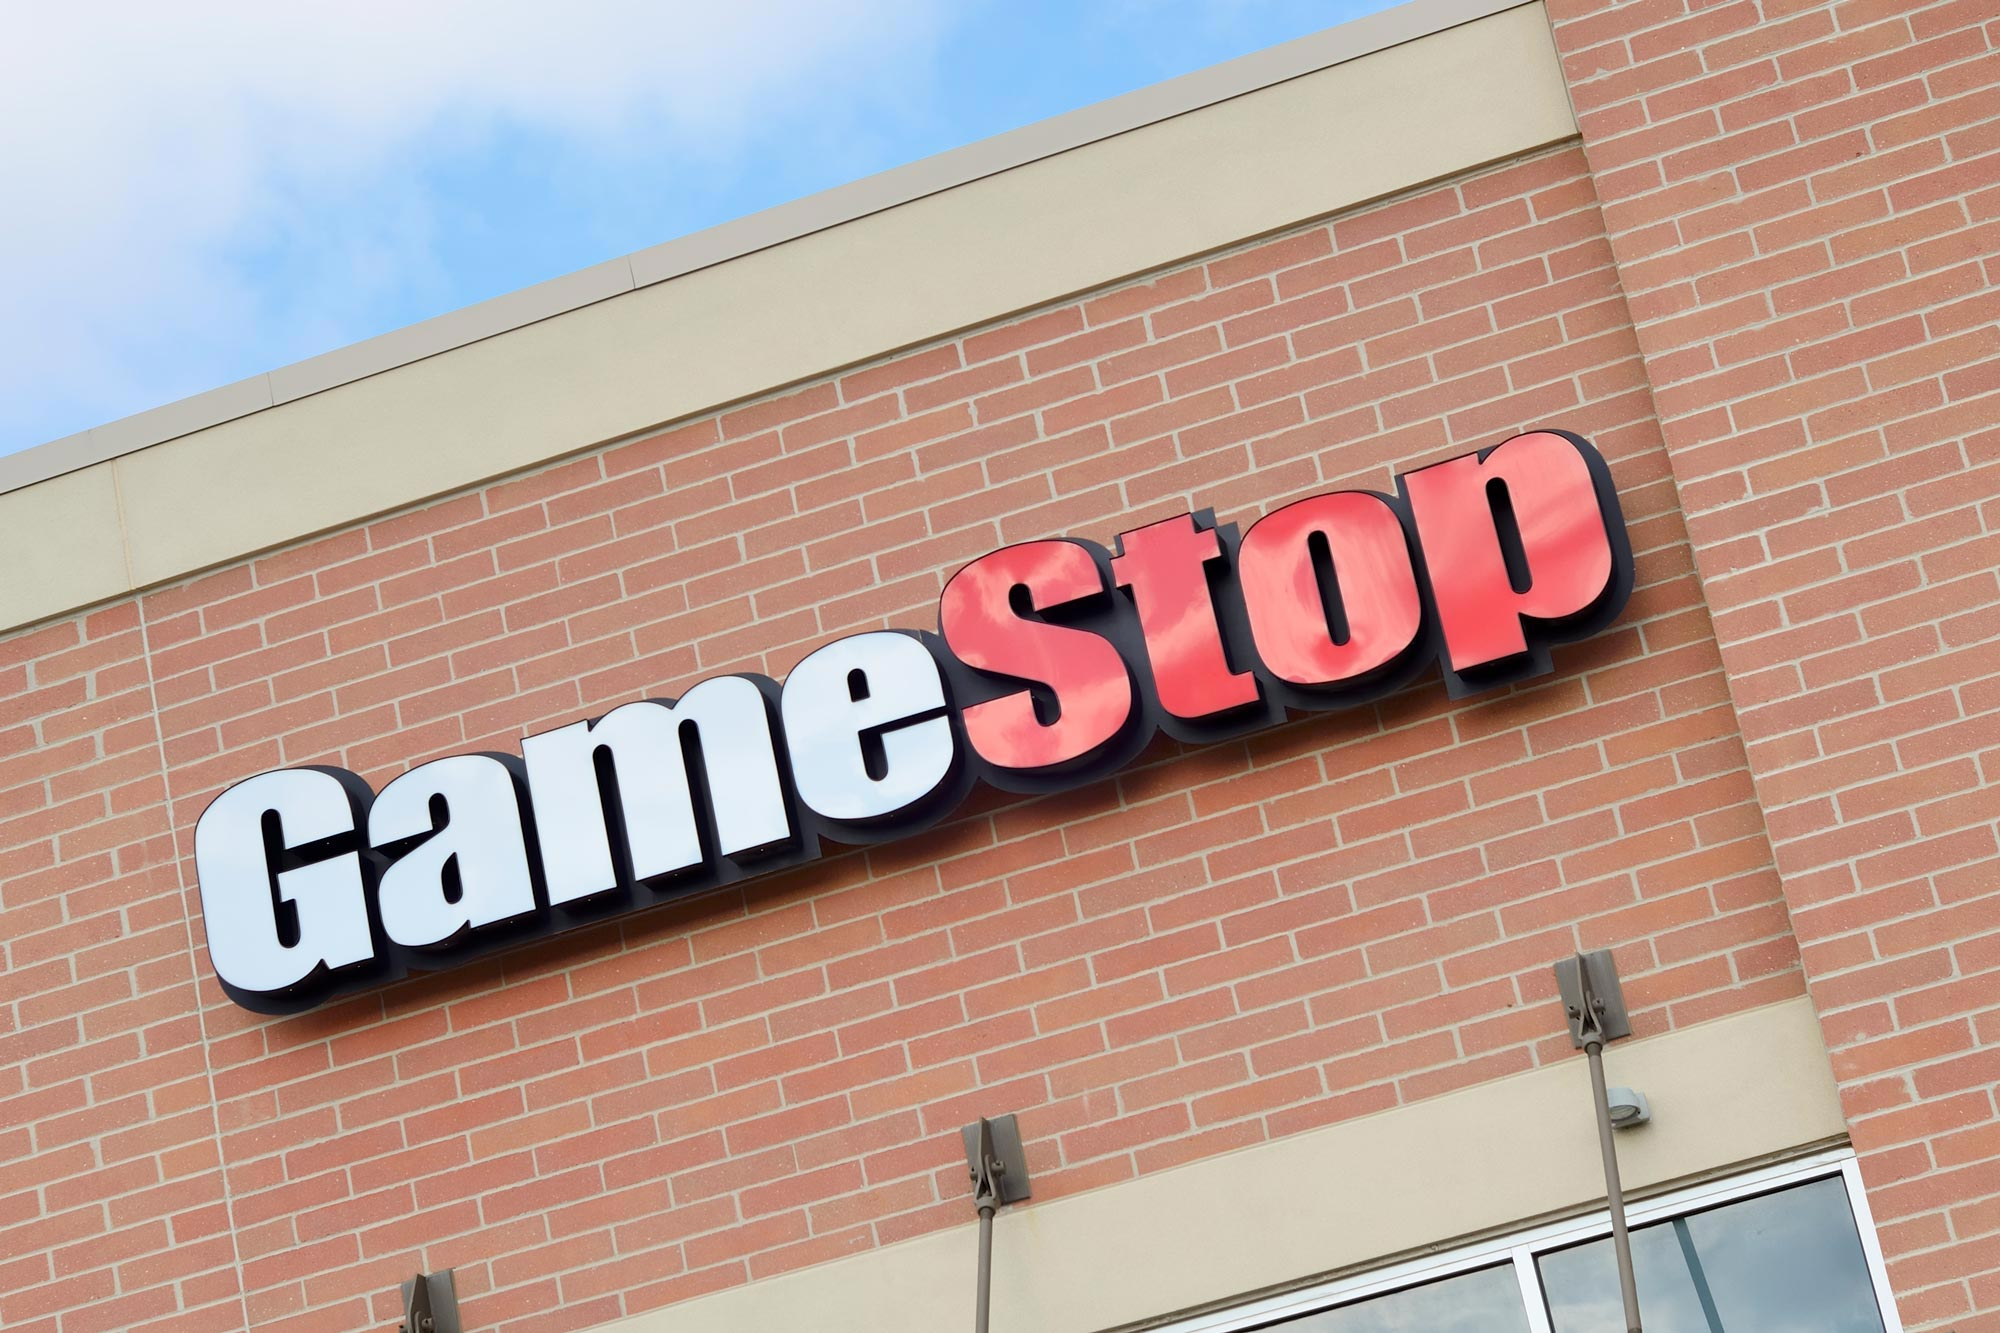 """Wallstreetbets,"" a group of Reddit members, turned its collective interest to GameStop, a largely unprofitable brick-and-mortar video game retailer that hedge funds were betting against."